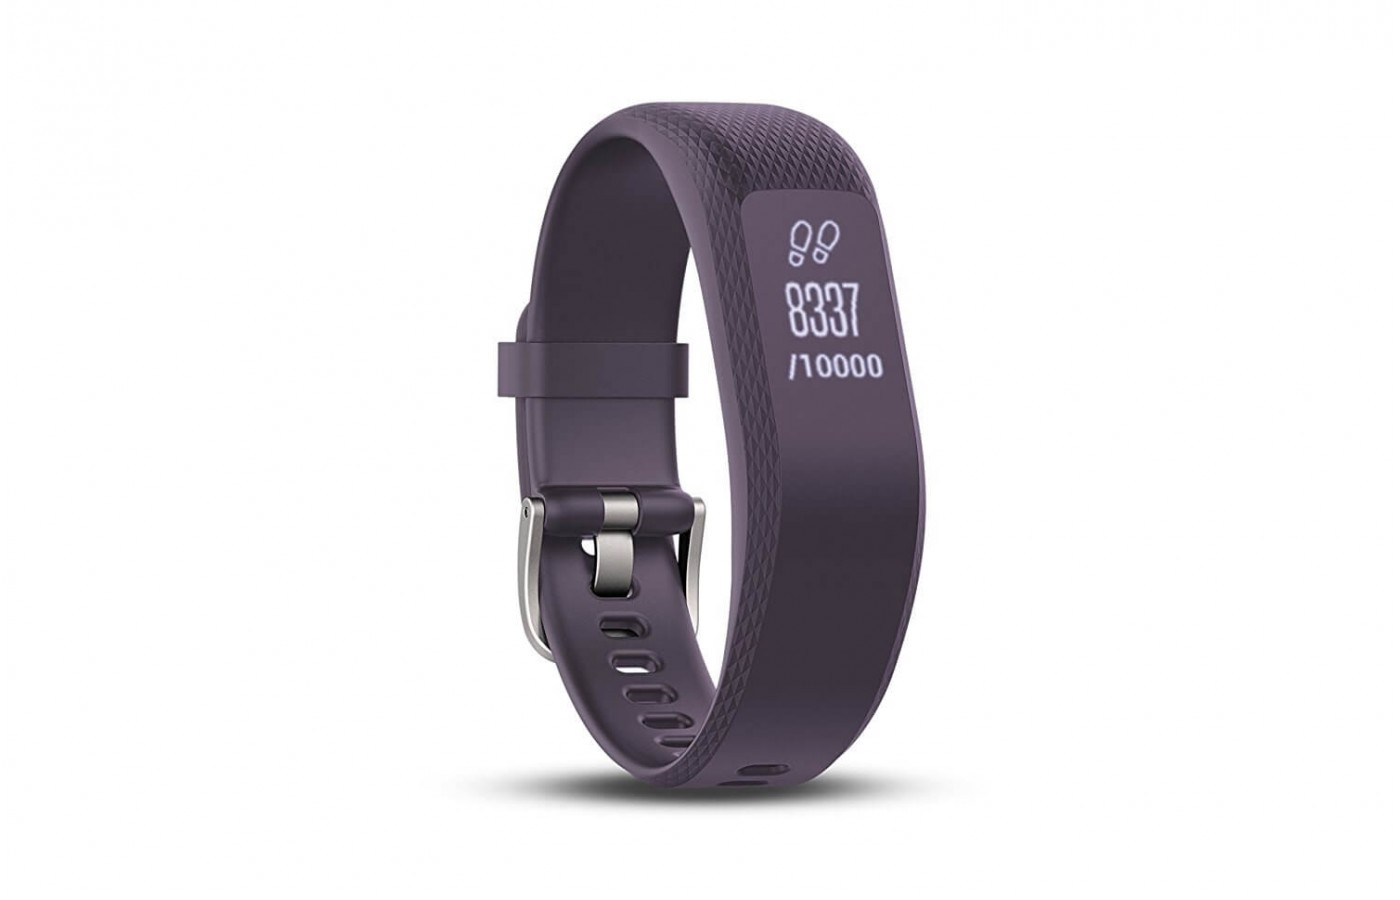 Track your steps, calories burned, intensity minutes, and more with the Garmin Vivosmart 3